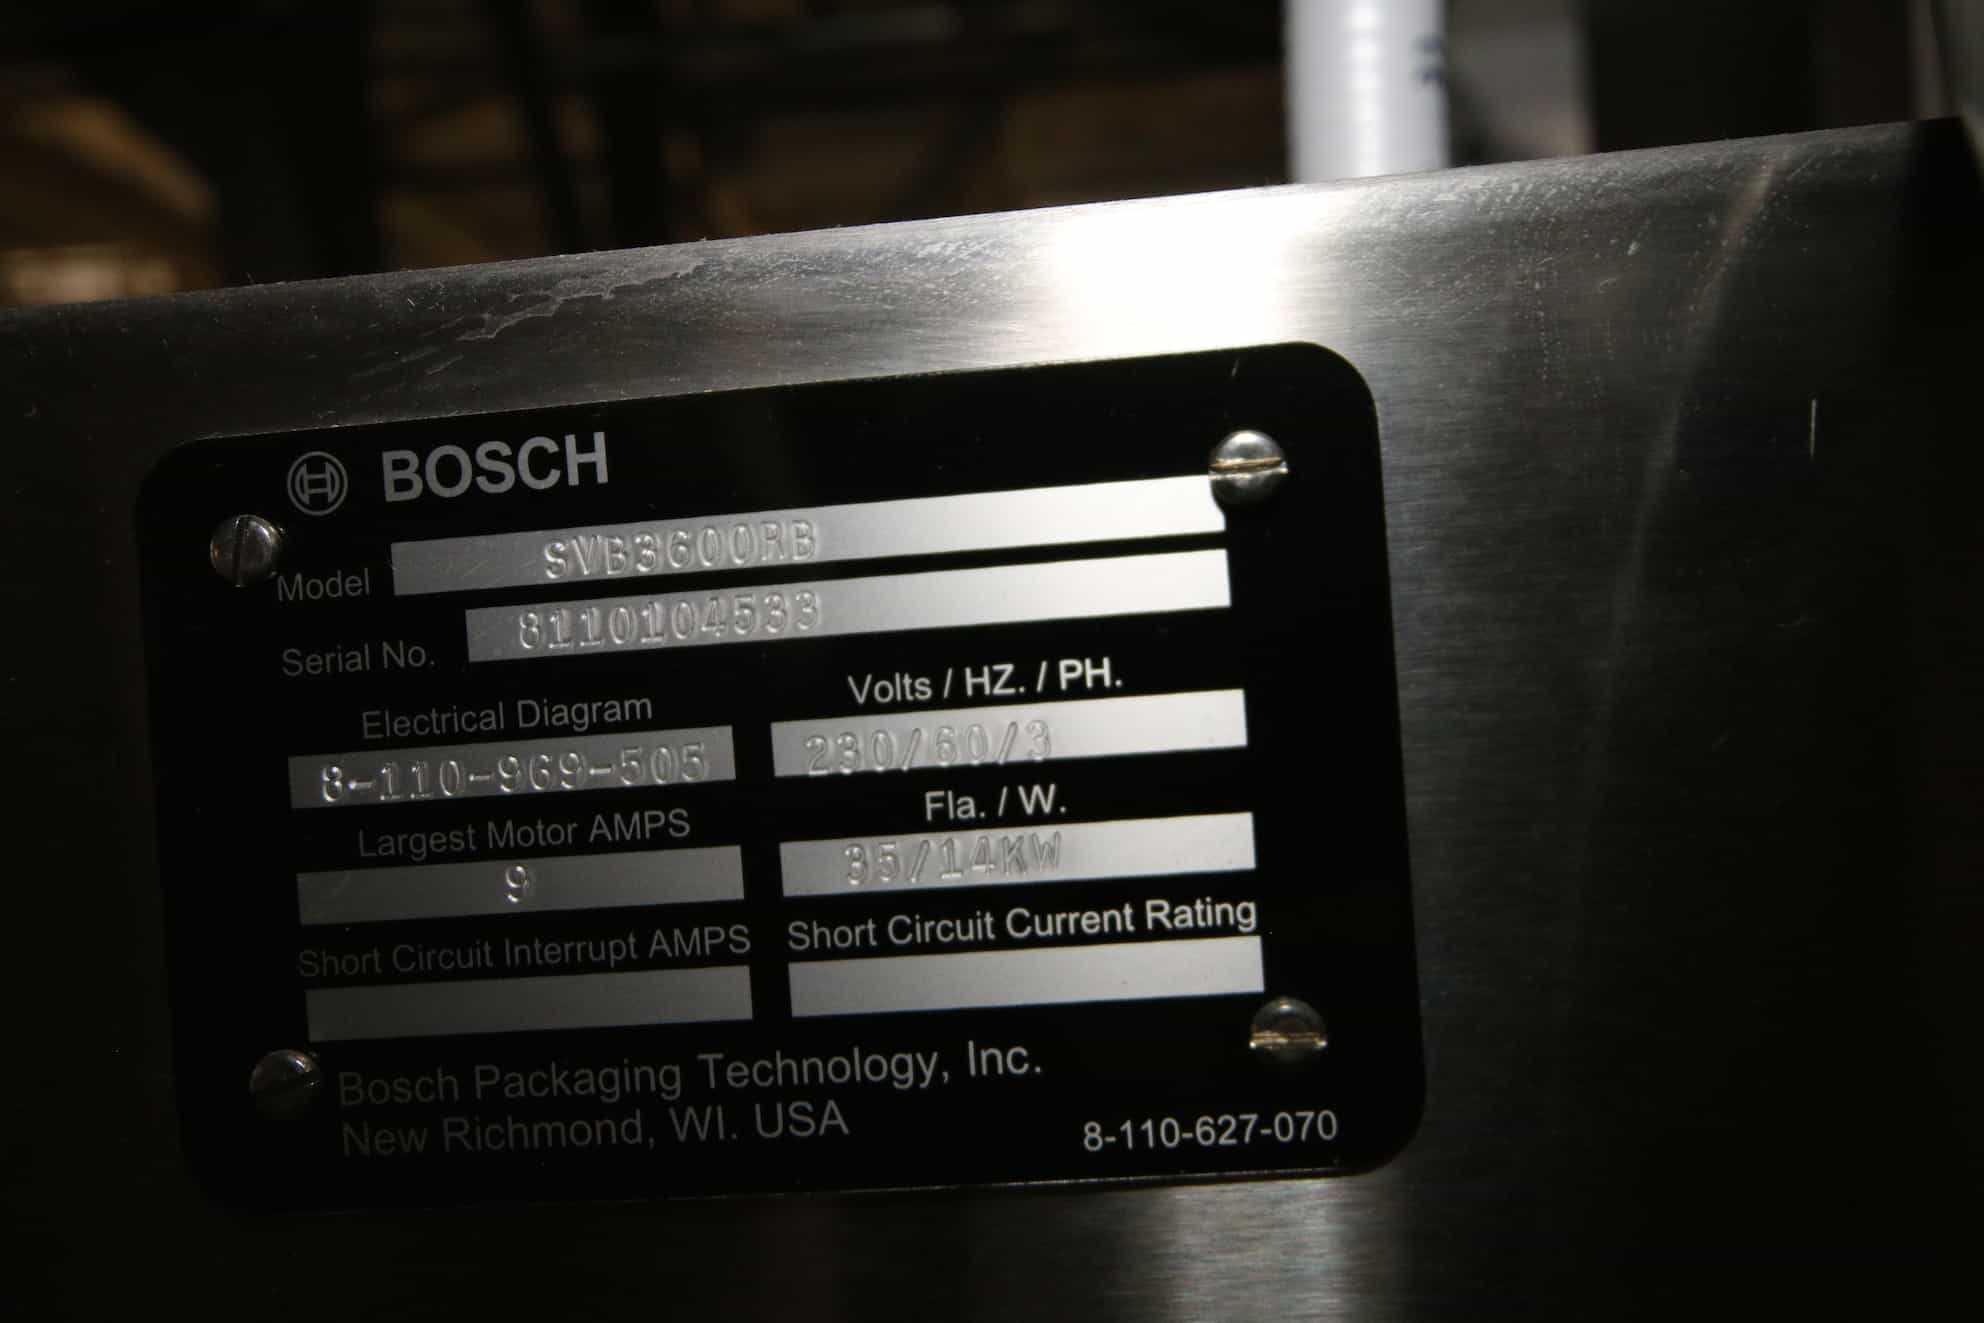 """Bosch ALL S/S Form Fill and Seal Bagger, M/N SVB3600RB, S/N 8110104533 with Allen Bradley Panel View Plus 1250 and Allen Bradley PLC, Cat #:  1769-ECR, 30"""" W Rolls"""